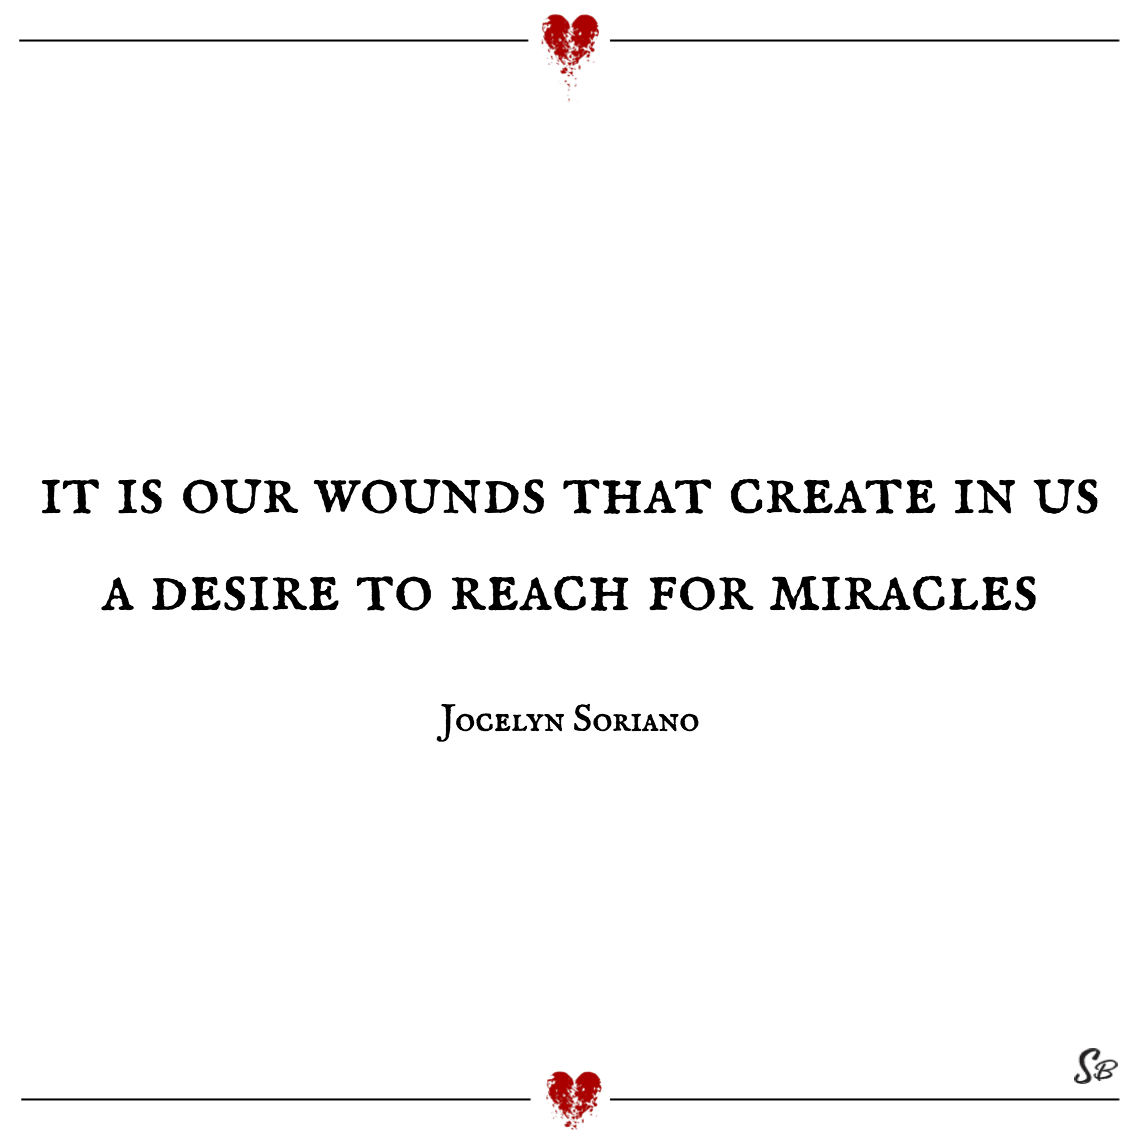 It is our wounds that create in us a desire to reach for miracles jocelyn soriano feeling hurt pain quotes